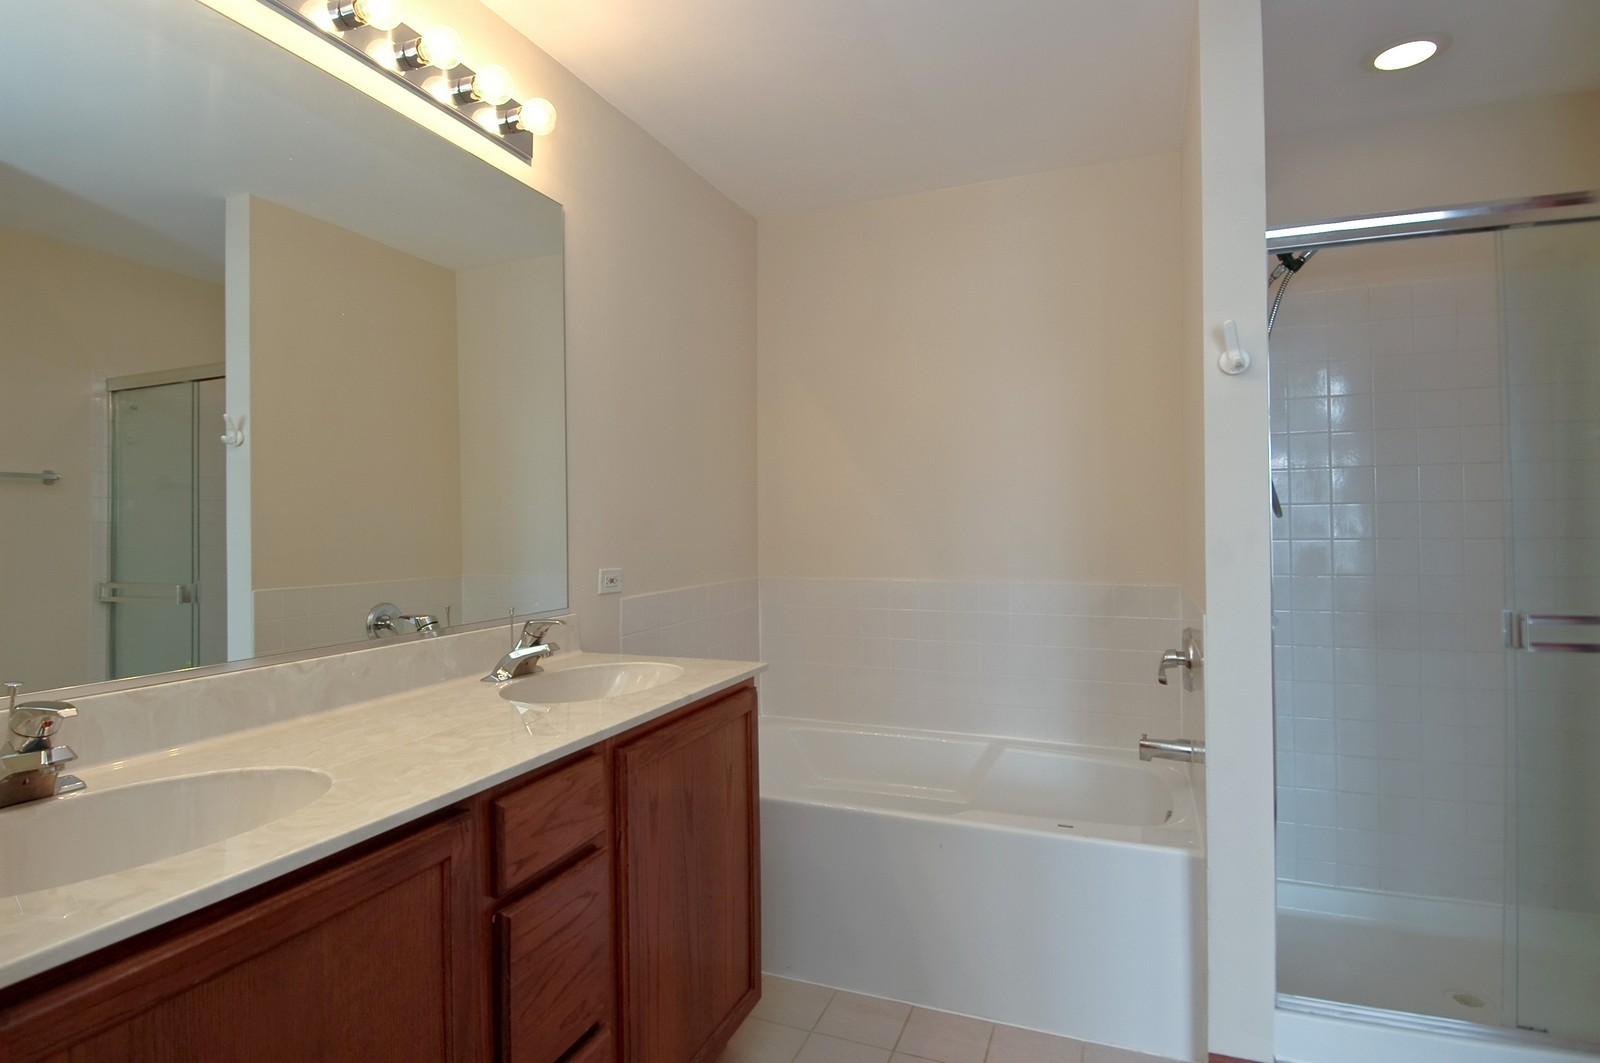 Real Estate Photography - 3220 Renard Lane, Saint Charles, IL, 60175 - Master Bathroom